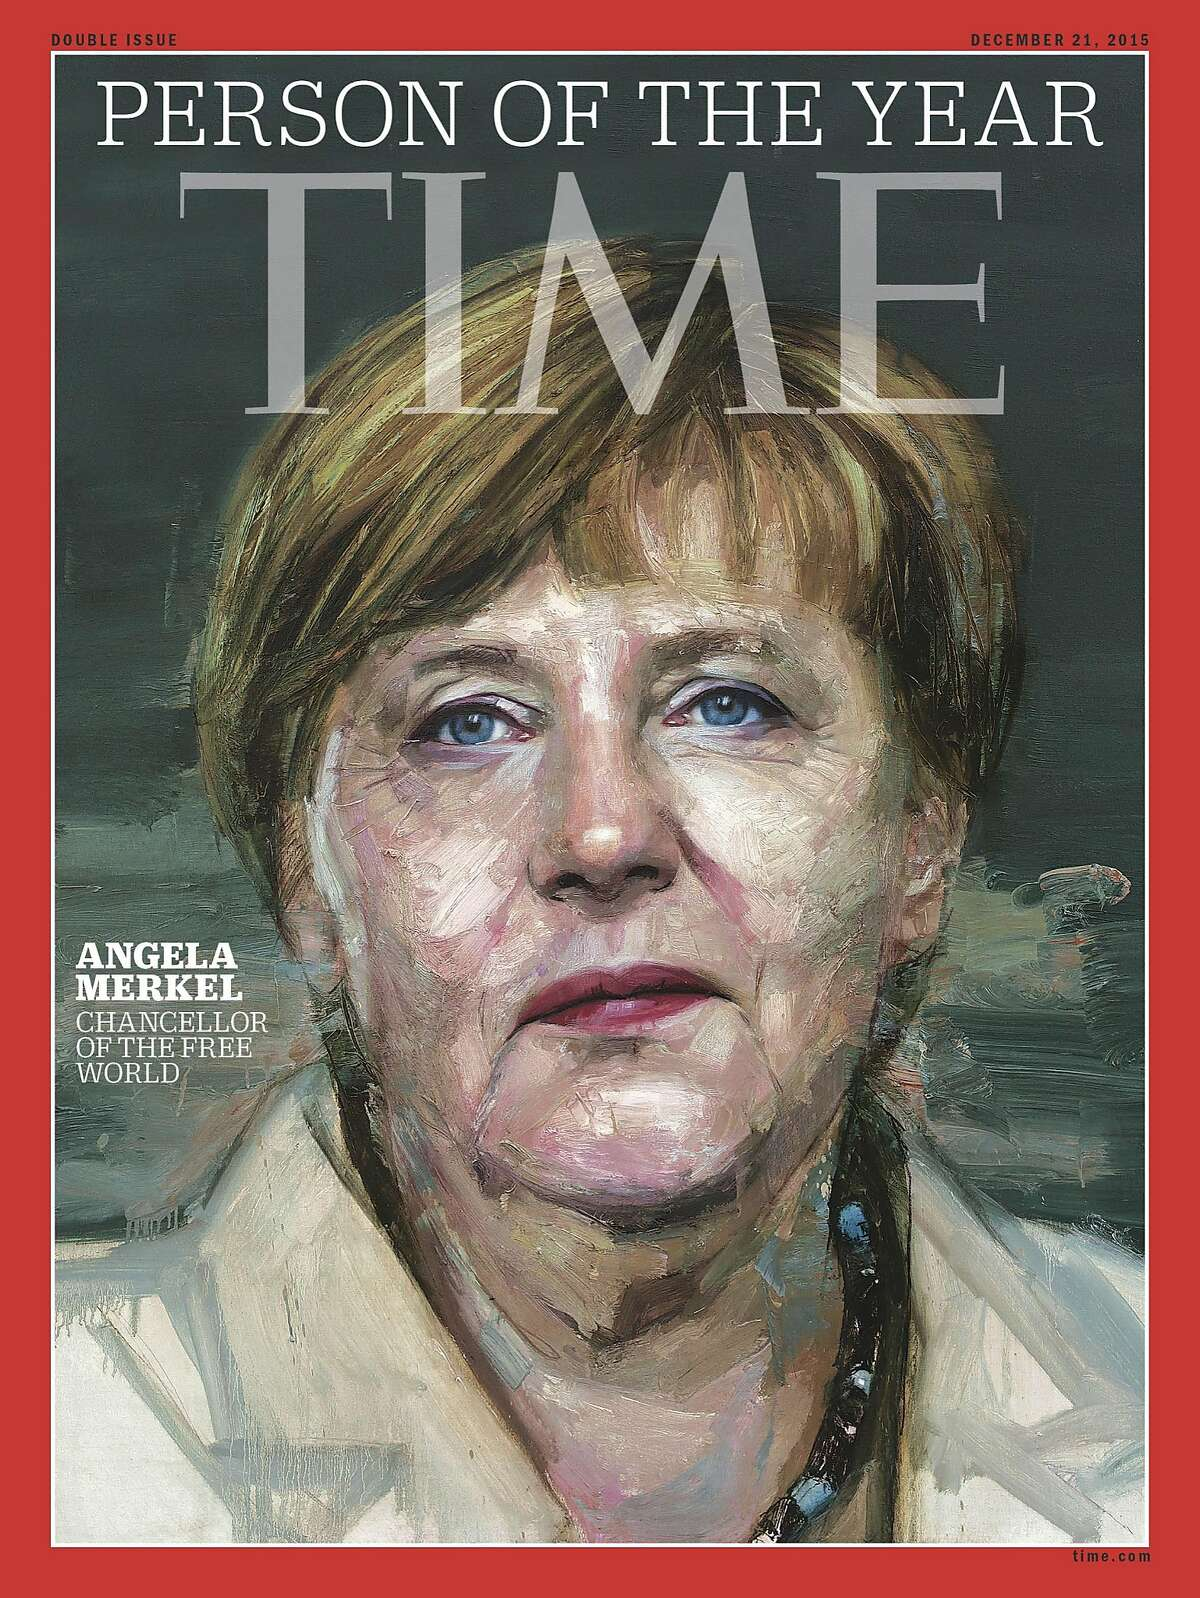 In this image provided by Time Magazine, Wednesday, Dec. 9, 2015, German Chancellor Angela Merkel is featured as Time's Person of the Year. The magazine praises her leadership on everything from Syrian refugees to the Greek debt crisis. (Time Magazine via AP)